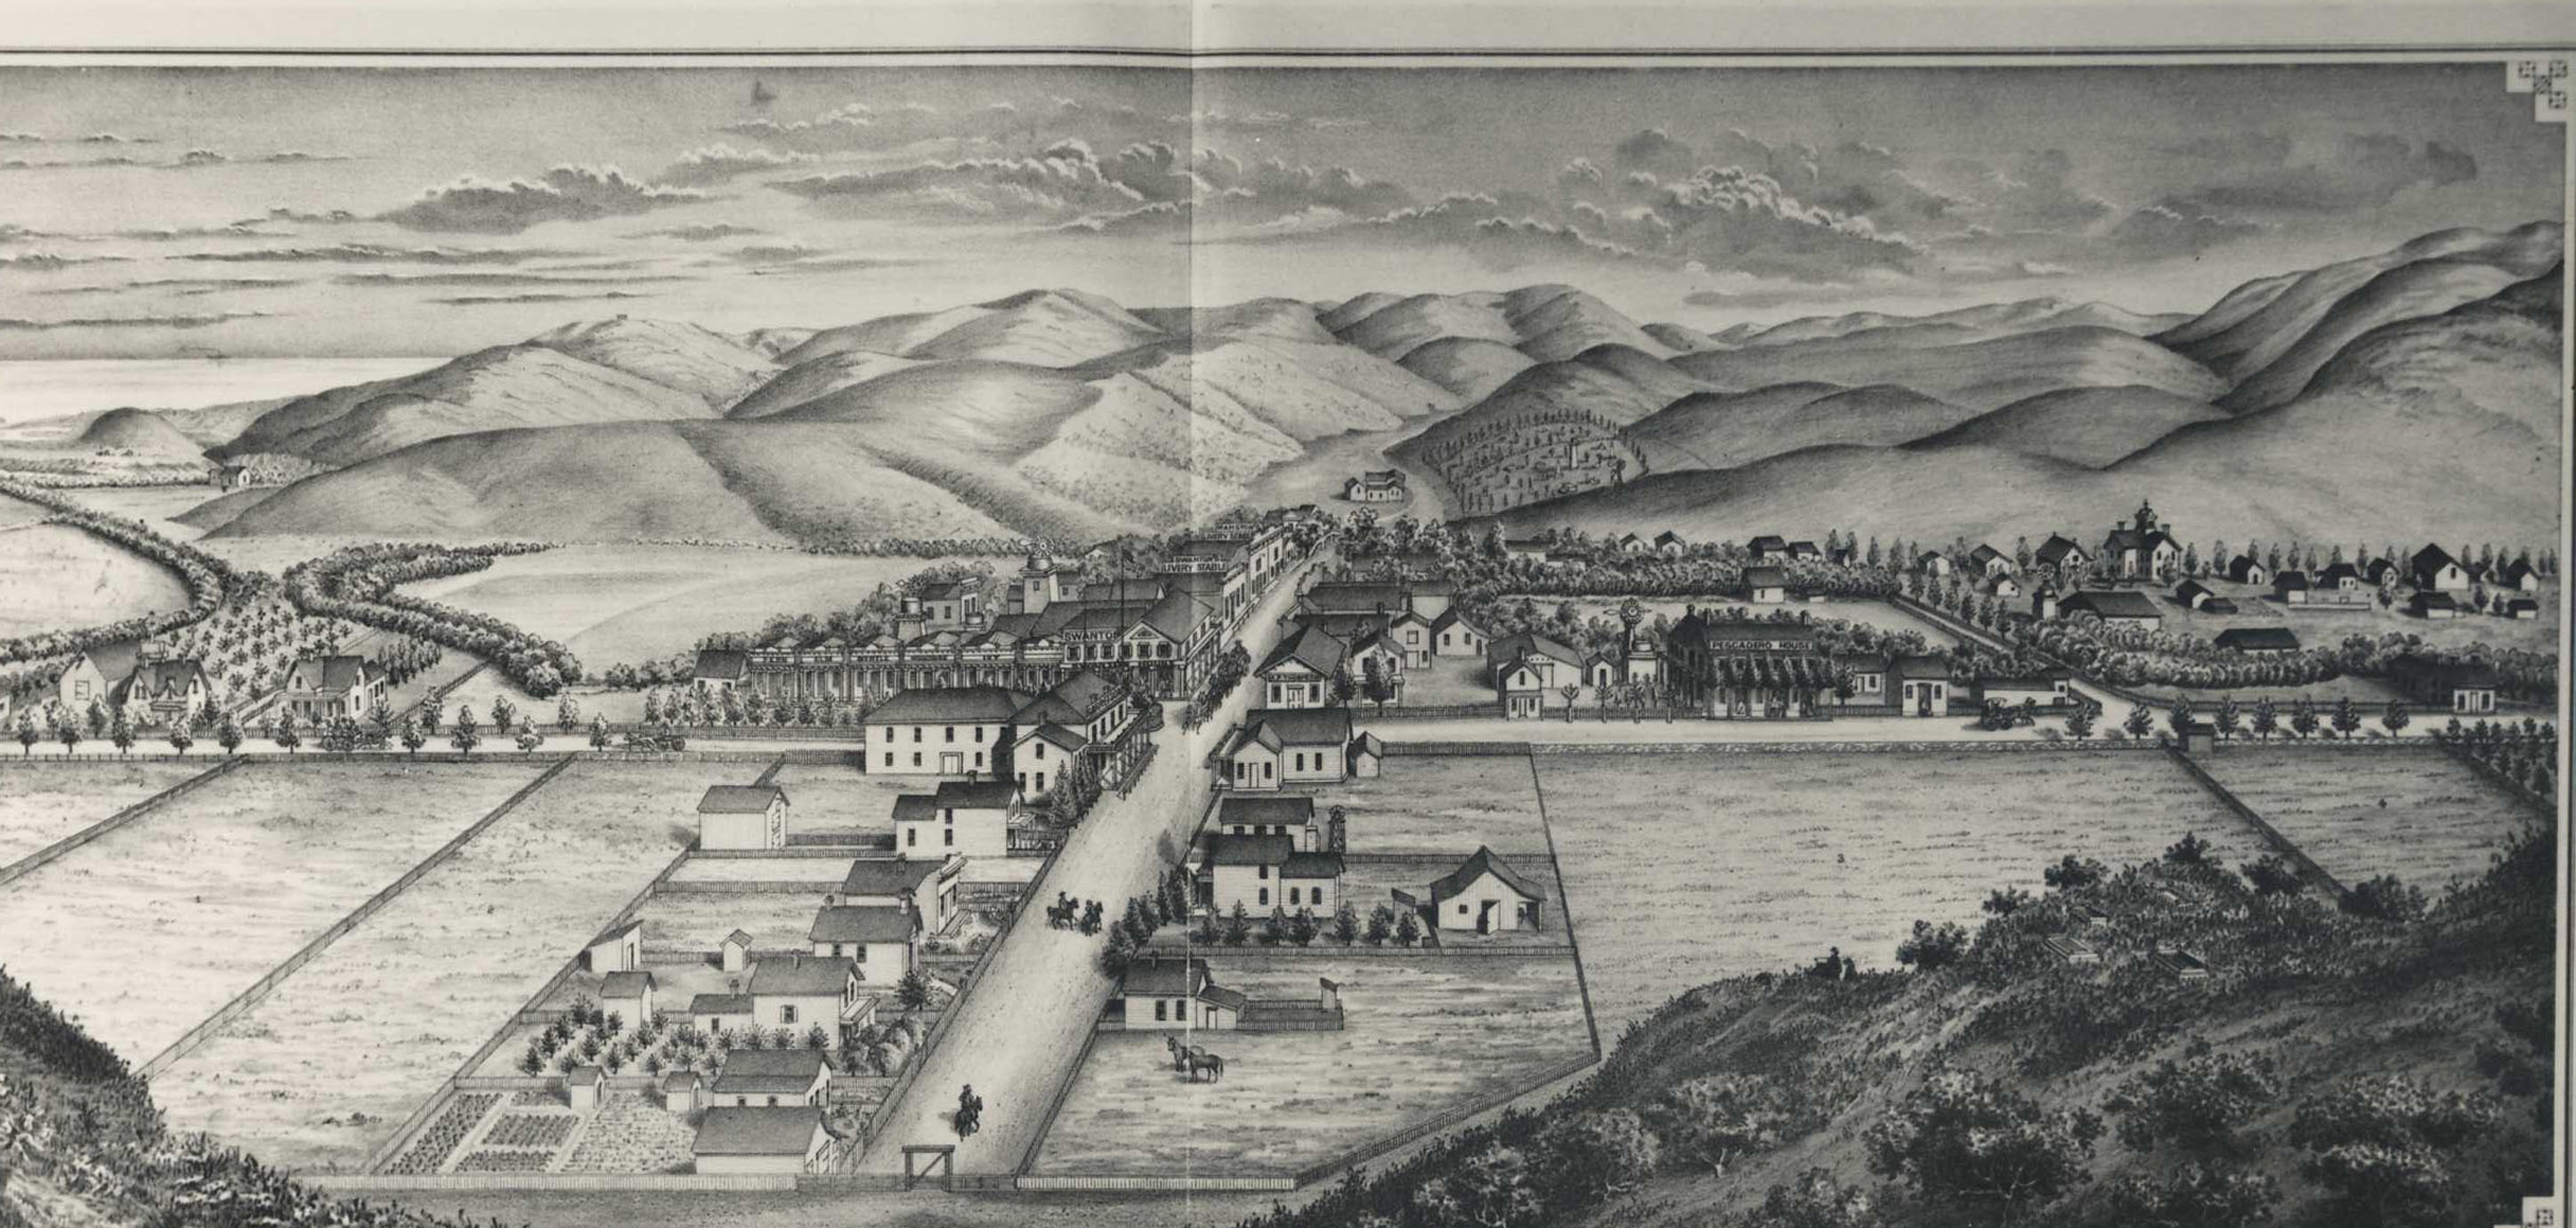 California san mateo county pescadero -  Image From The Illustrated History Of San Mateo County Moore Depue Originally Published In 1872